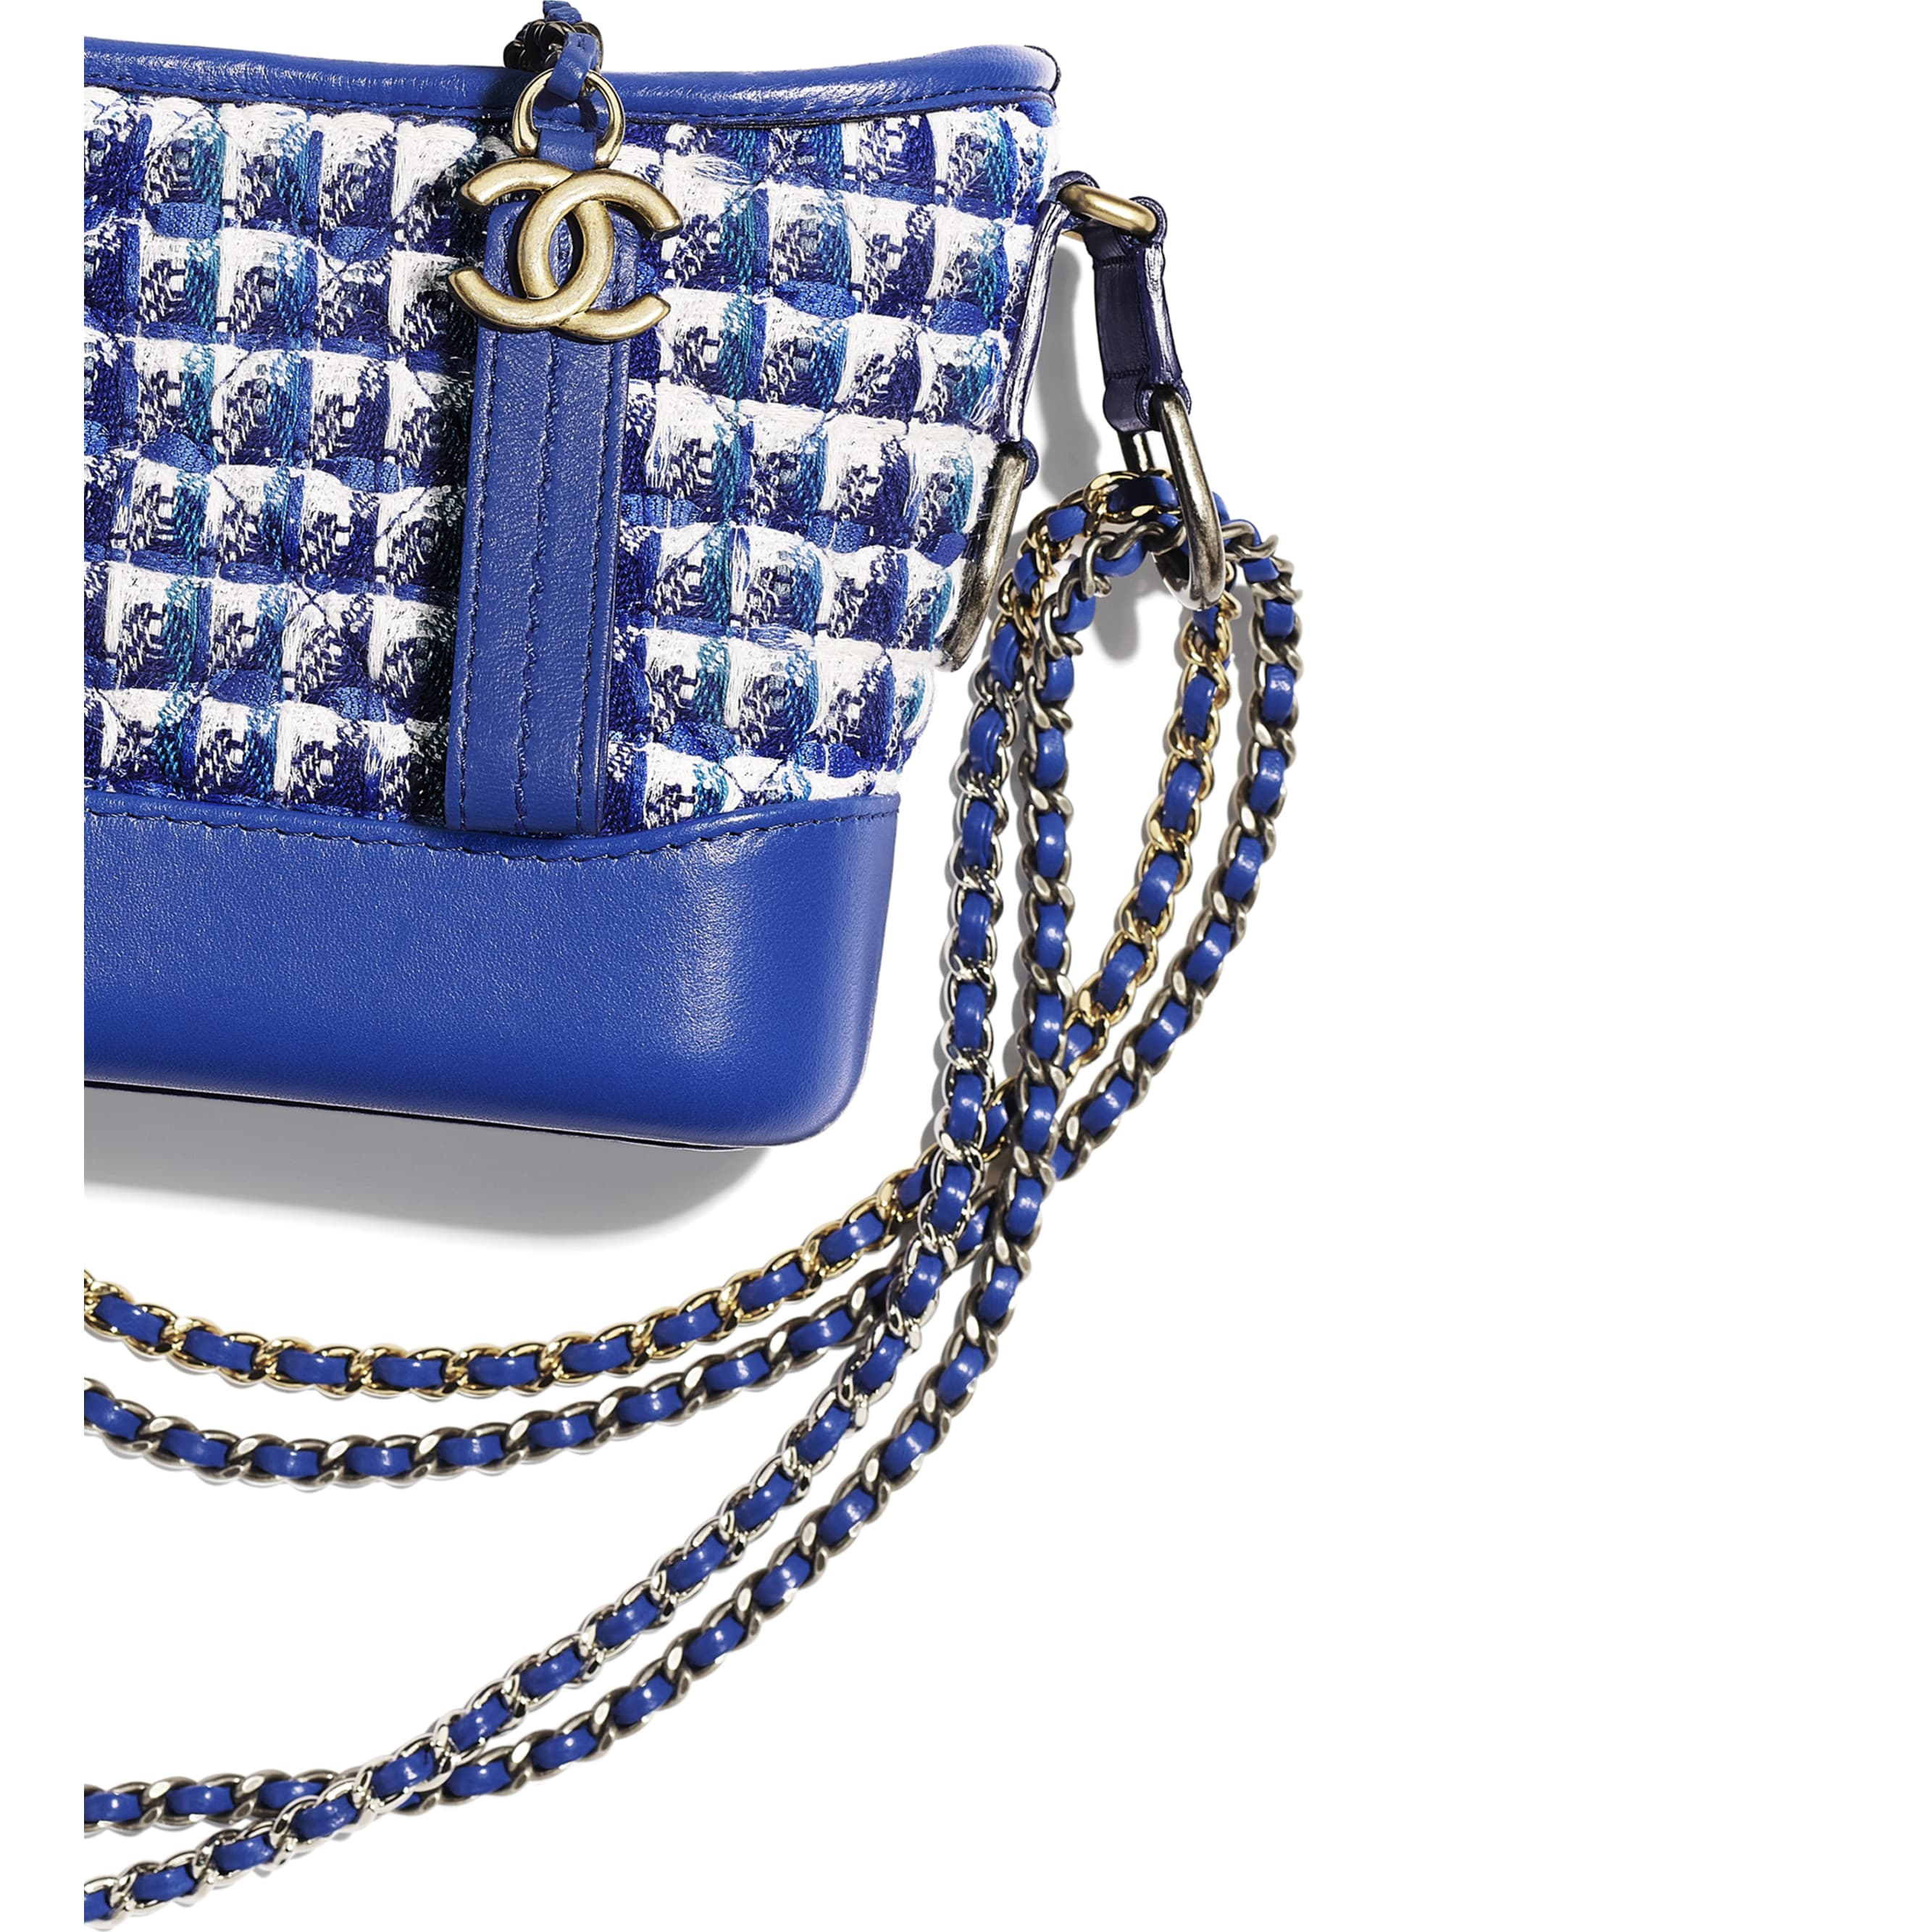 CHANEL'S GABRIELLE Small Hobo Bag - Blue, White & Silver - Tweed, Calfskin, Silver-Tone & Gold-Tone Metal - CHANEL - Other view - see standard sized version